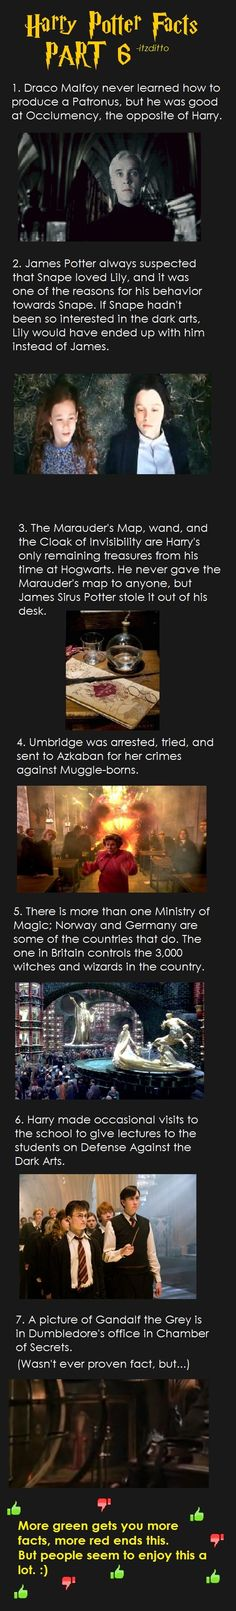 Harry Potter Facts Part 6 - Imgur